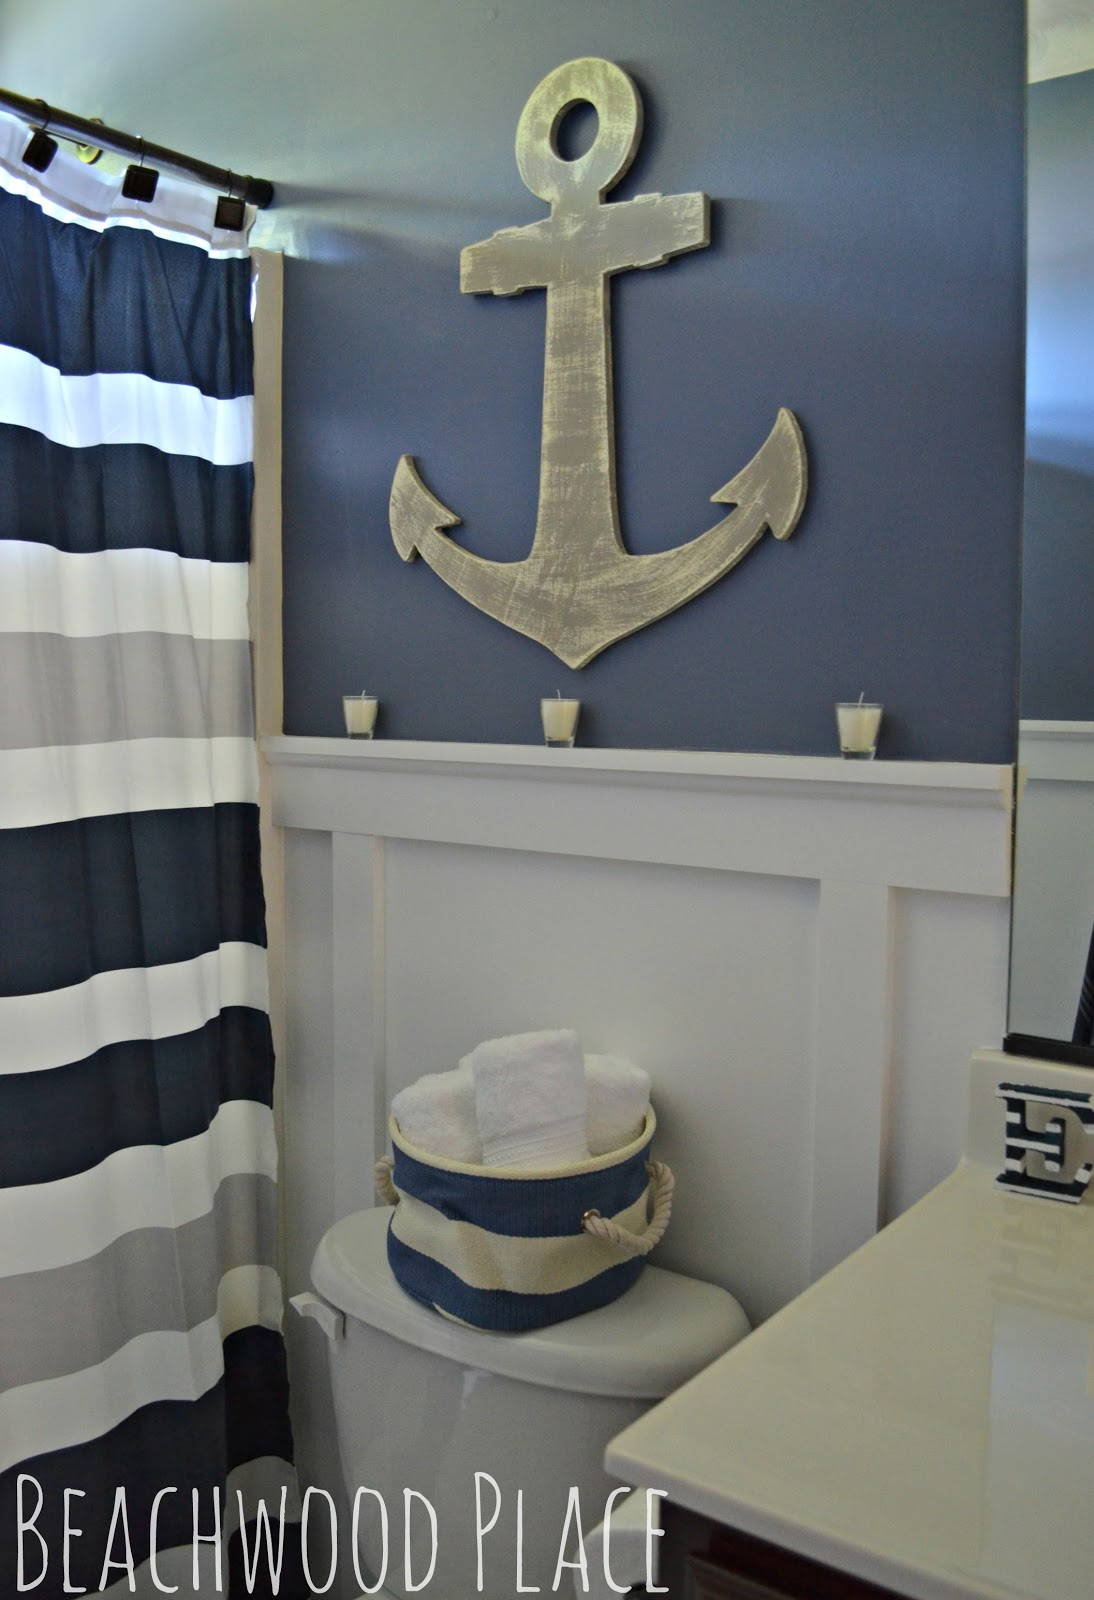 Nautical shower curtain ideas - 25 Best Nautical Bathroom Ideas And Designs For 2017